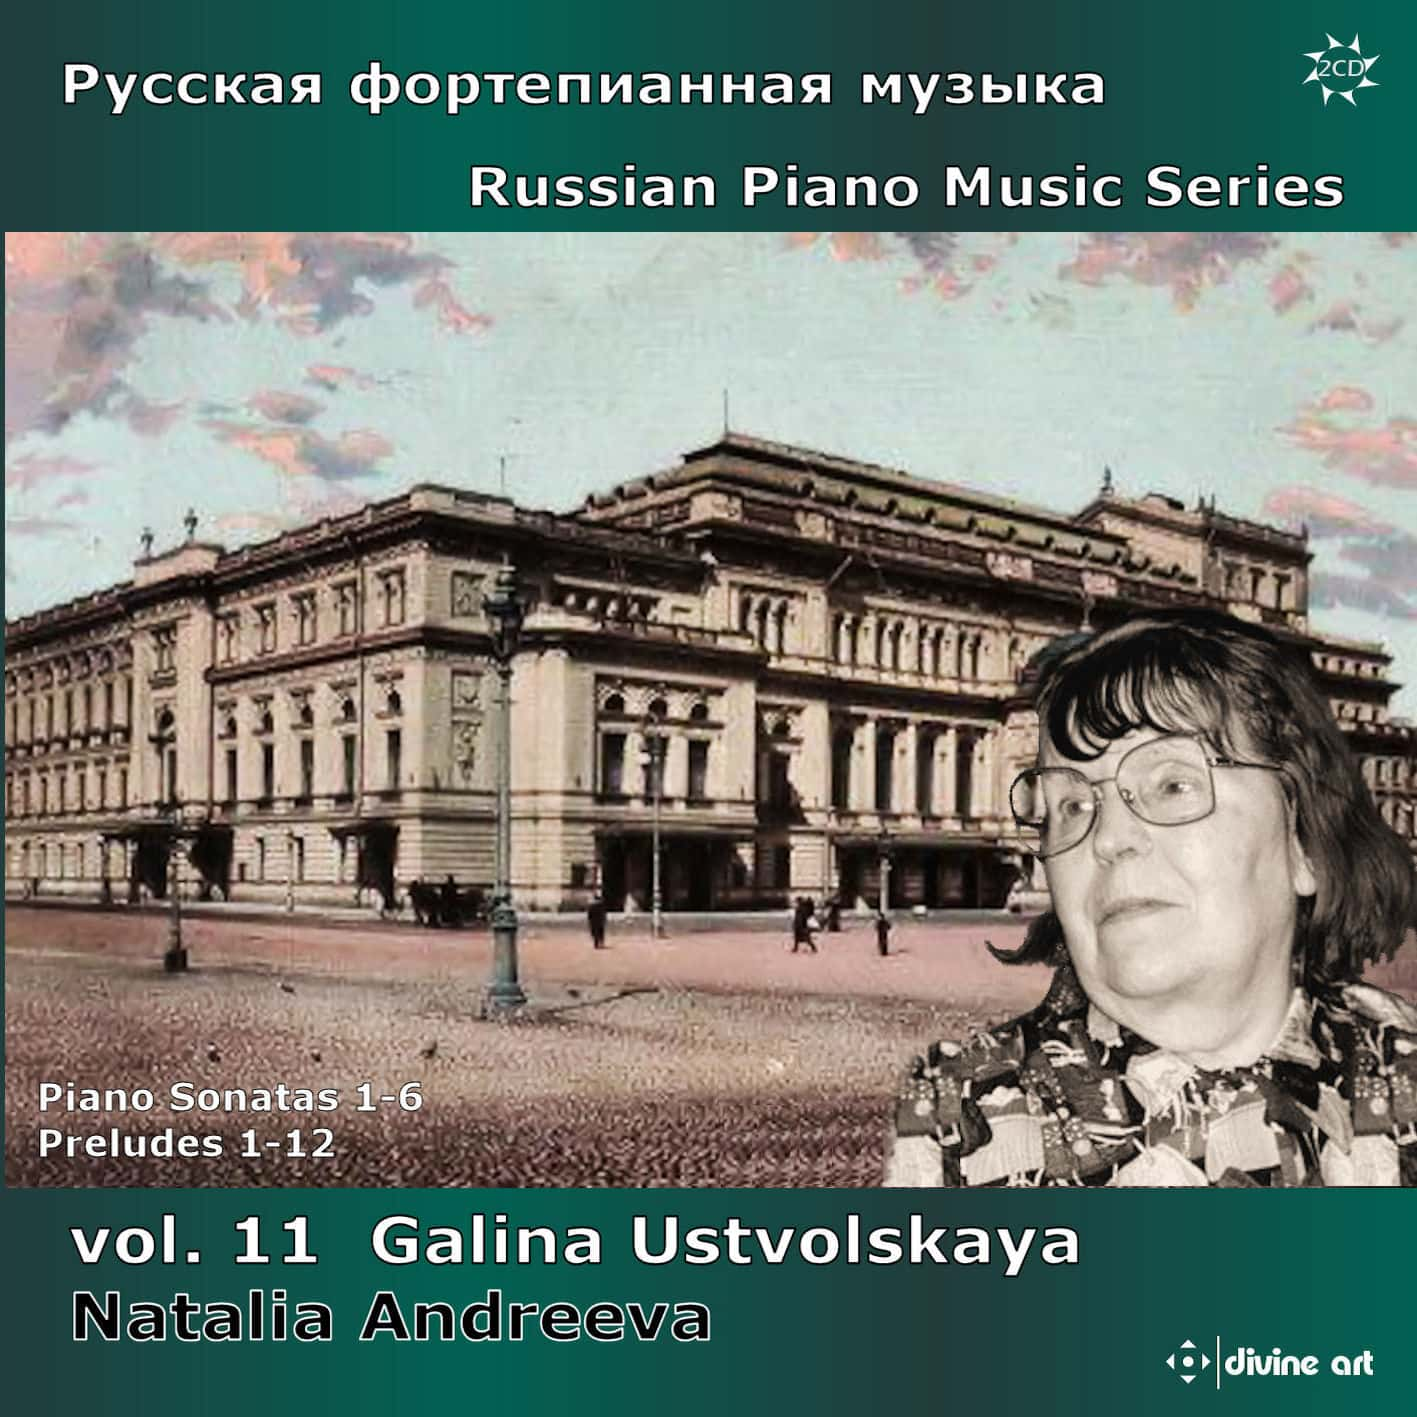 Russian Piano Music vol. 11 - Galina Ustvolskaya